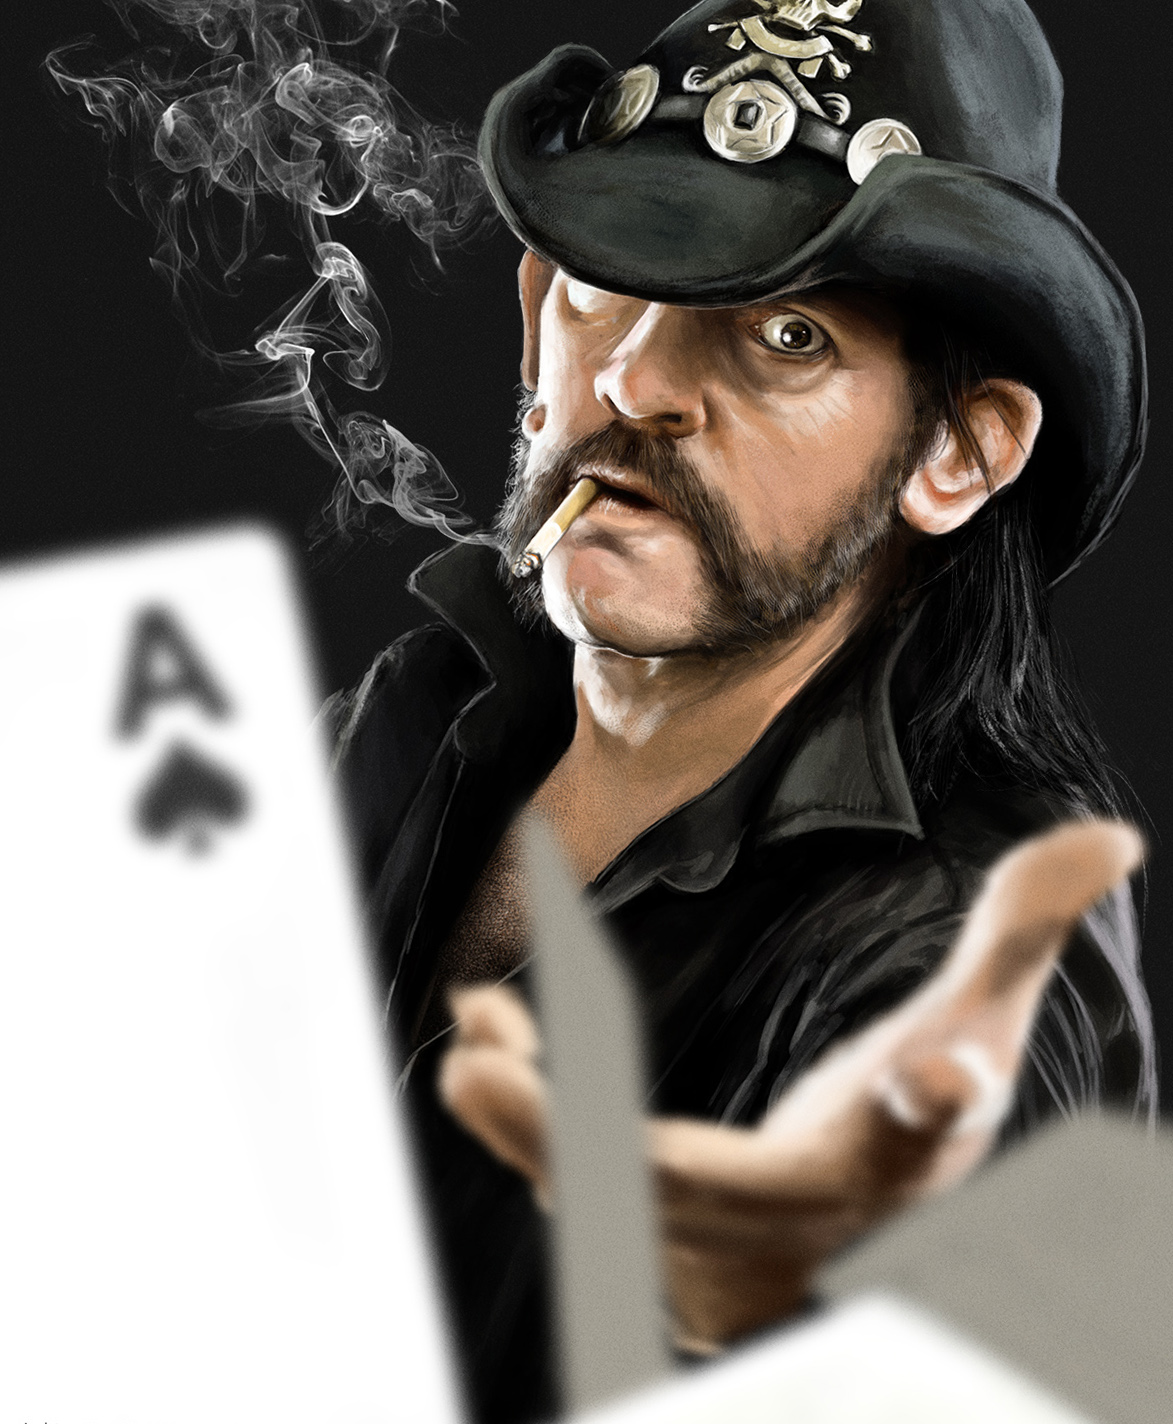 lemmy kilmister images hd full hd pictures